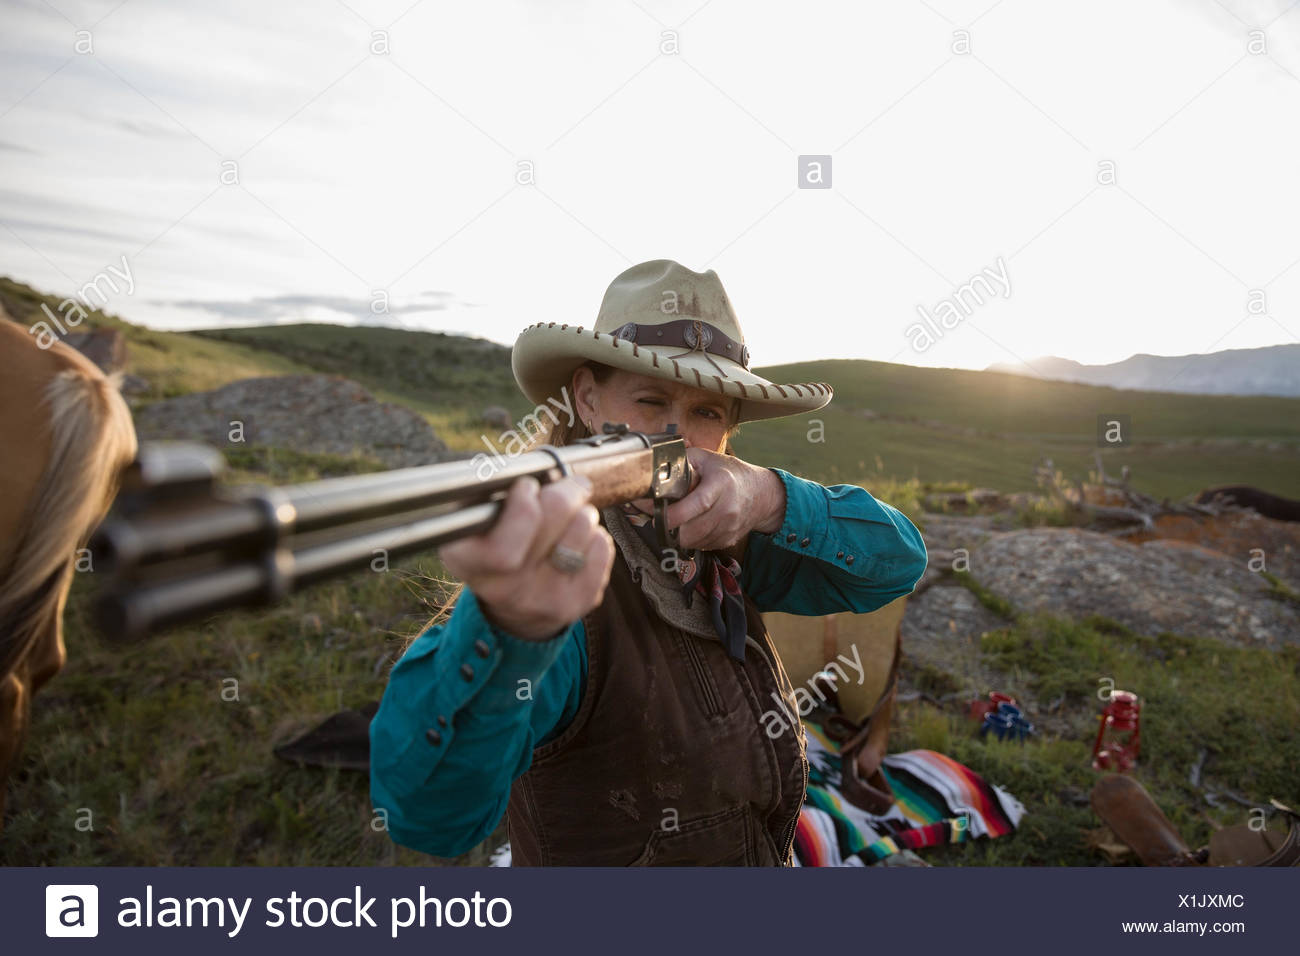 Female rancher aiming rifle in remote field - Stock Image